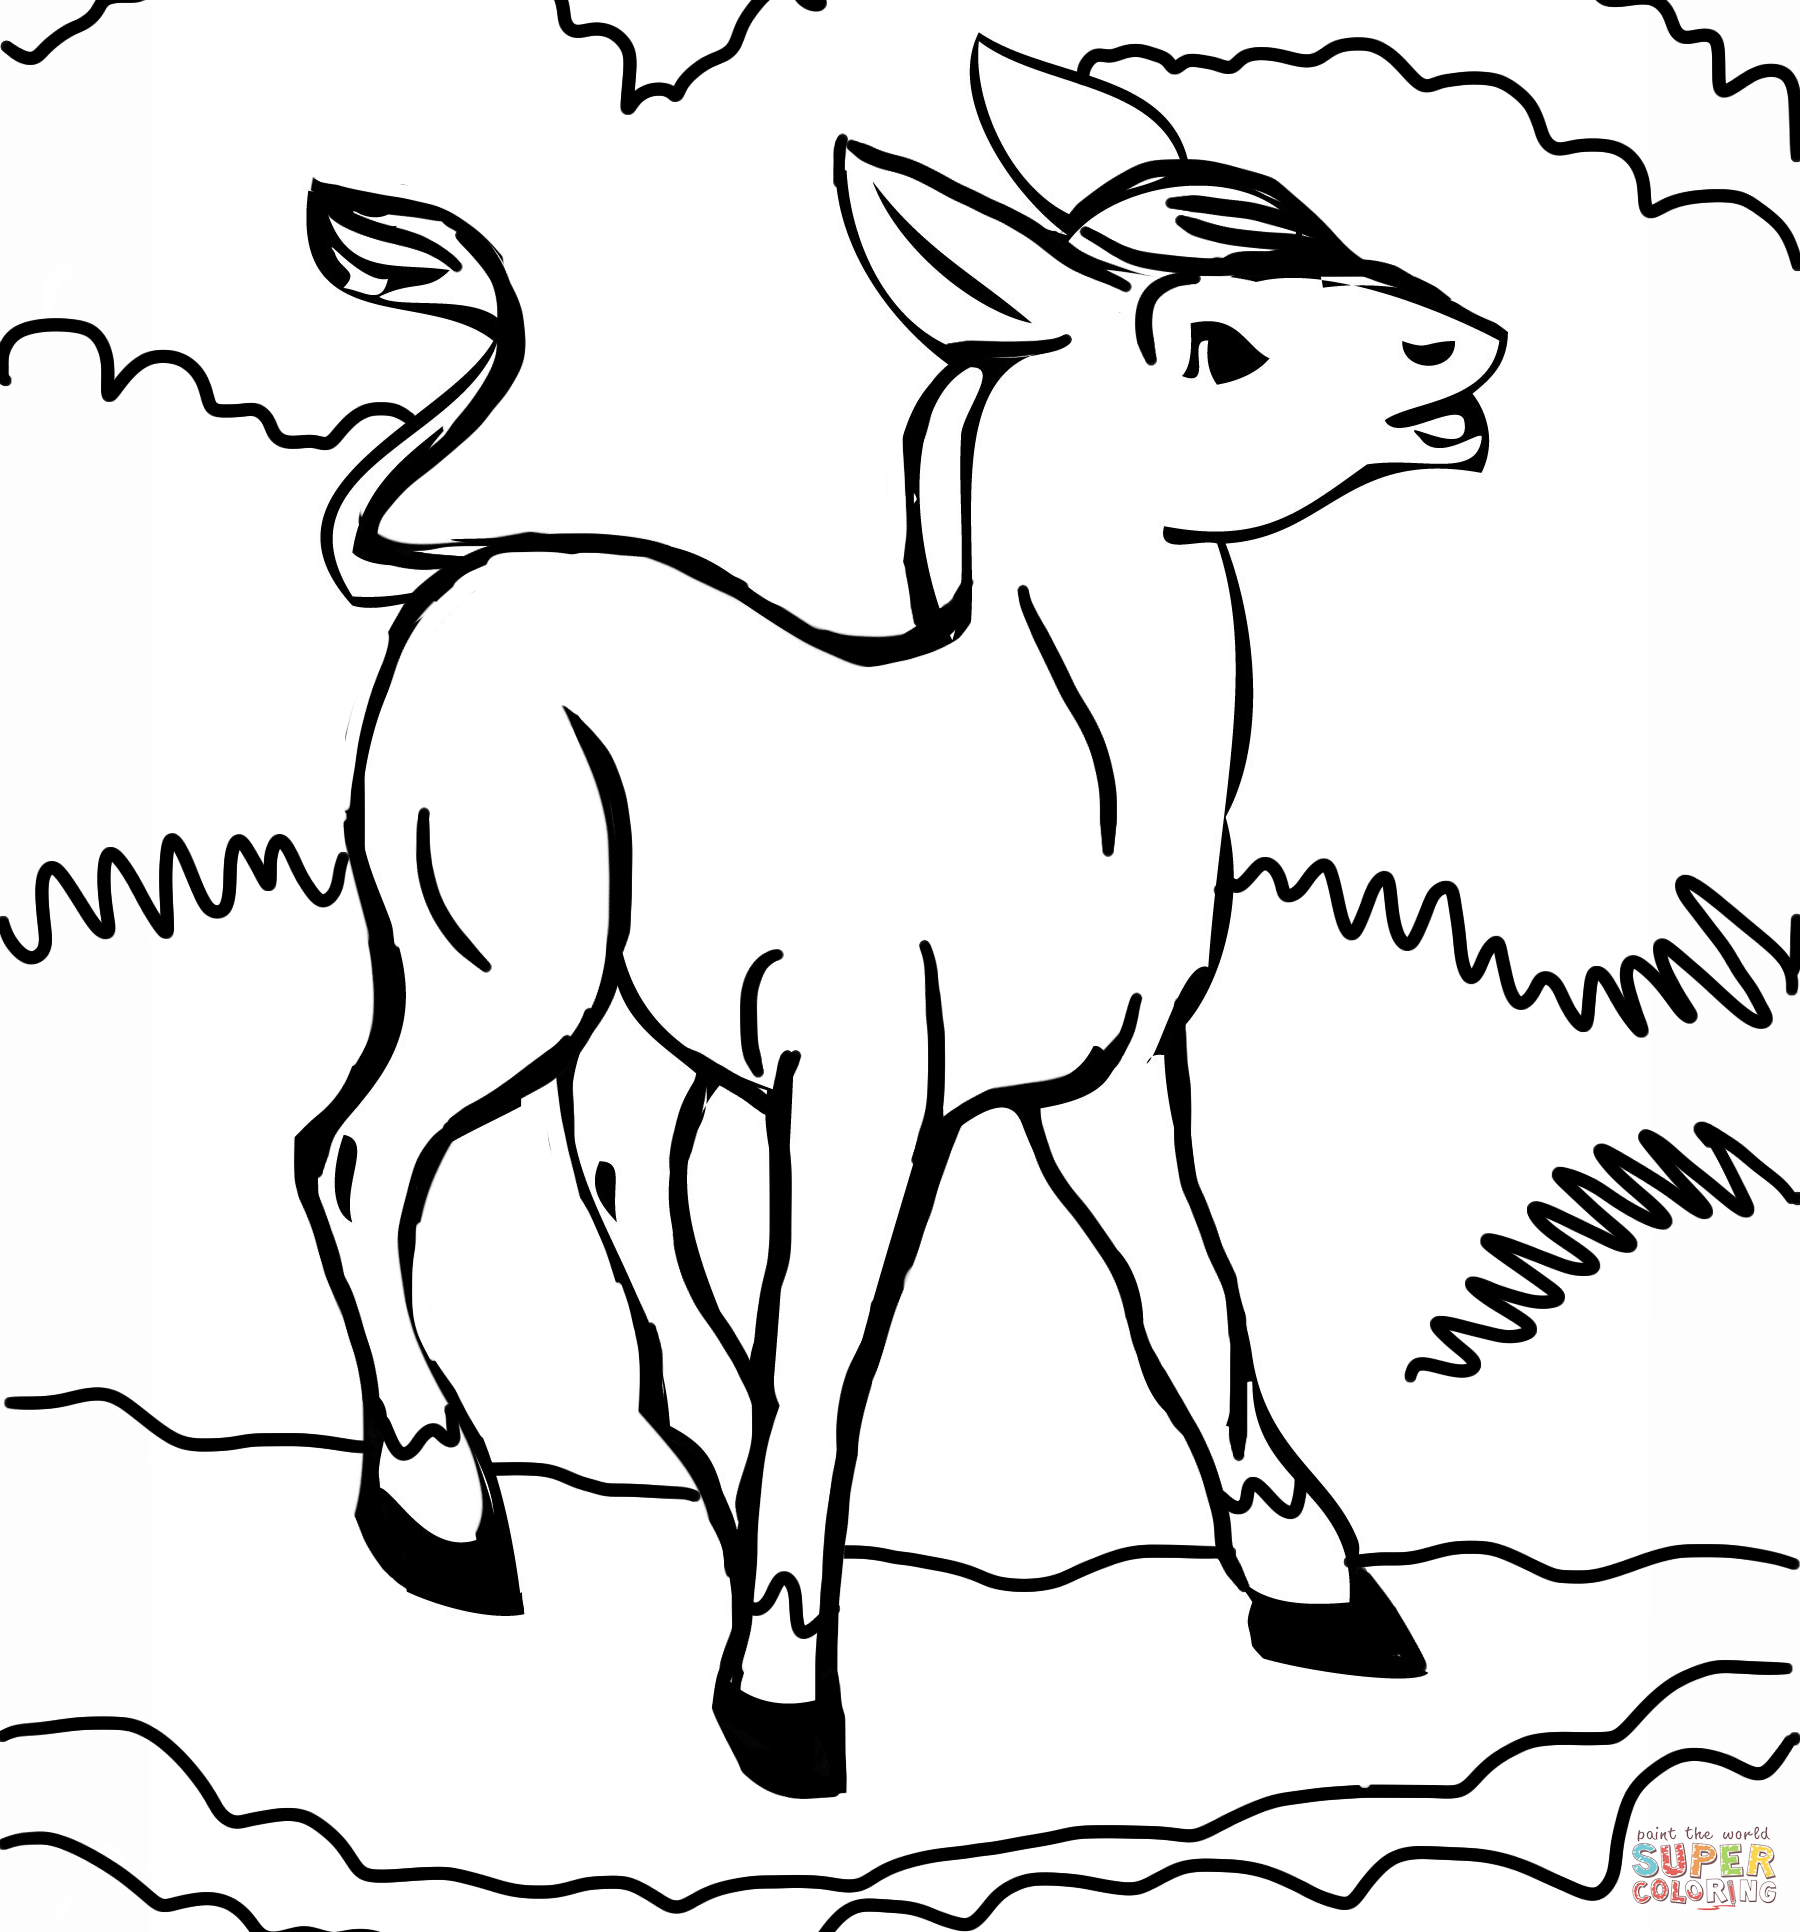 donkey pictures to print donkey coloring pages to download and print for free pictures print donkey to